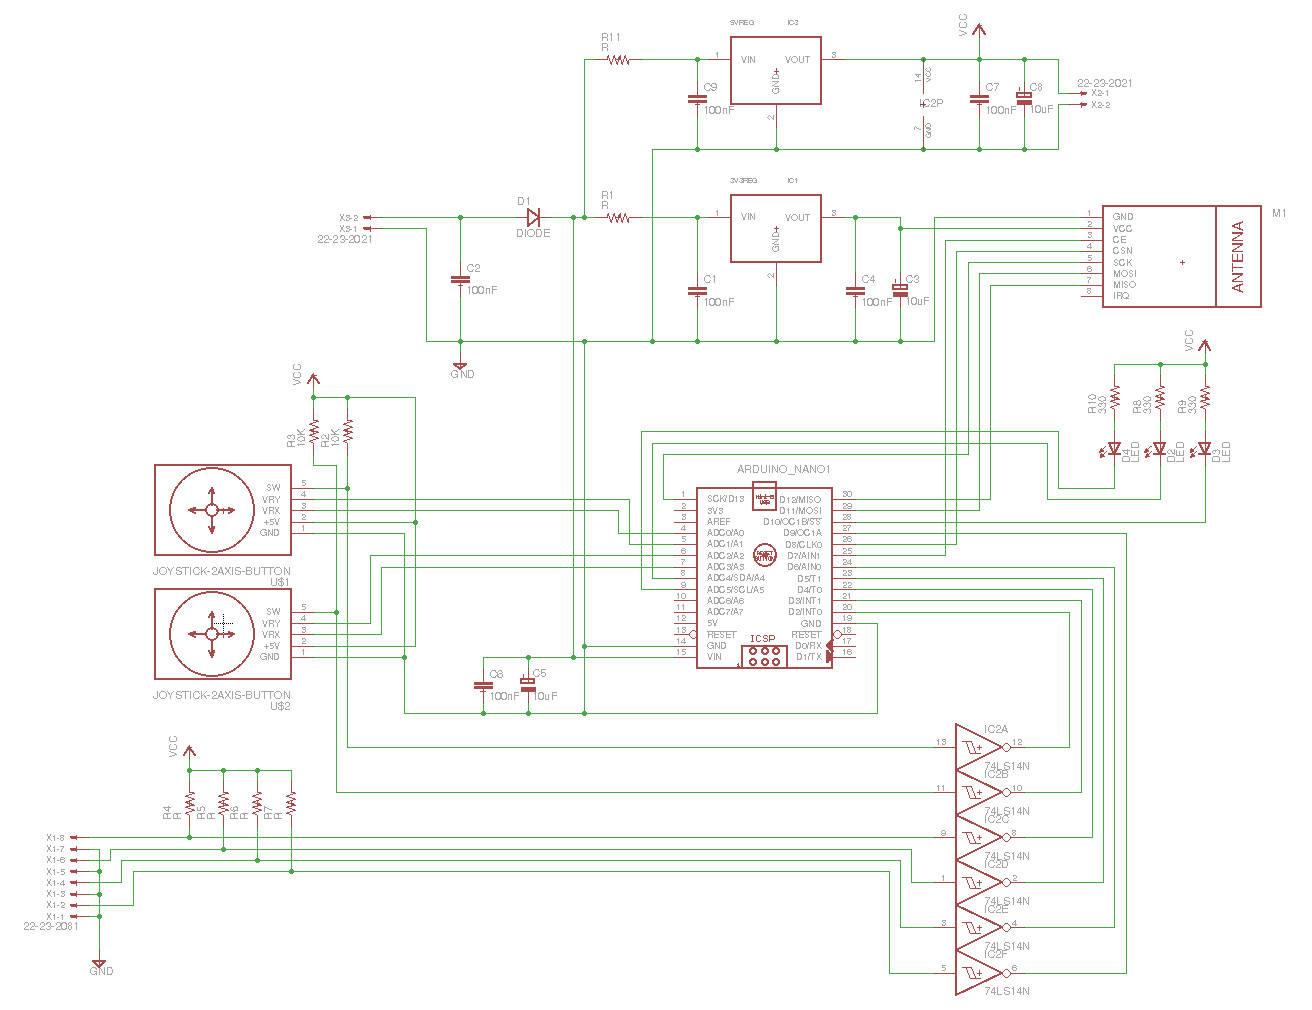 Antweights Robots High Current Dc Motor Driver Schematic Circuit And Pcb The Diagram For Remote Is Shown In Figure 27 Figures 28 30